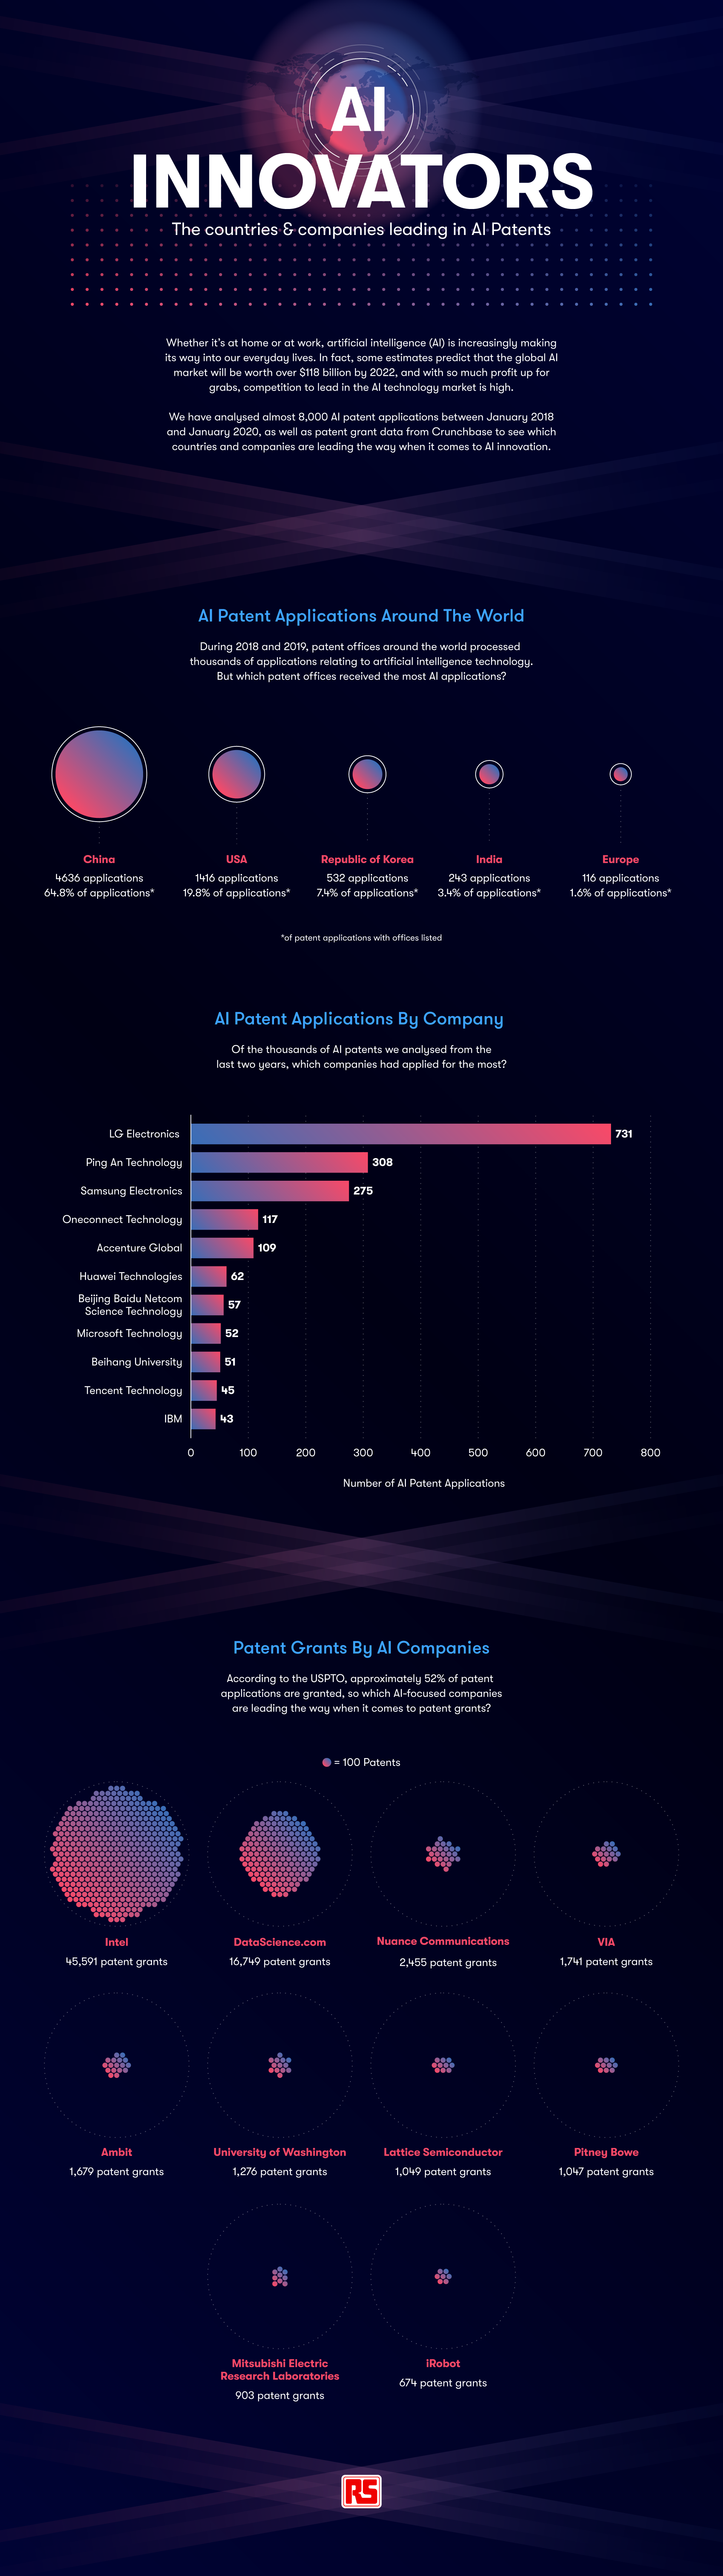 AI Innovators- The countries and companies in AI Patents, RS Components, January 2020